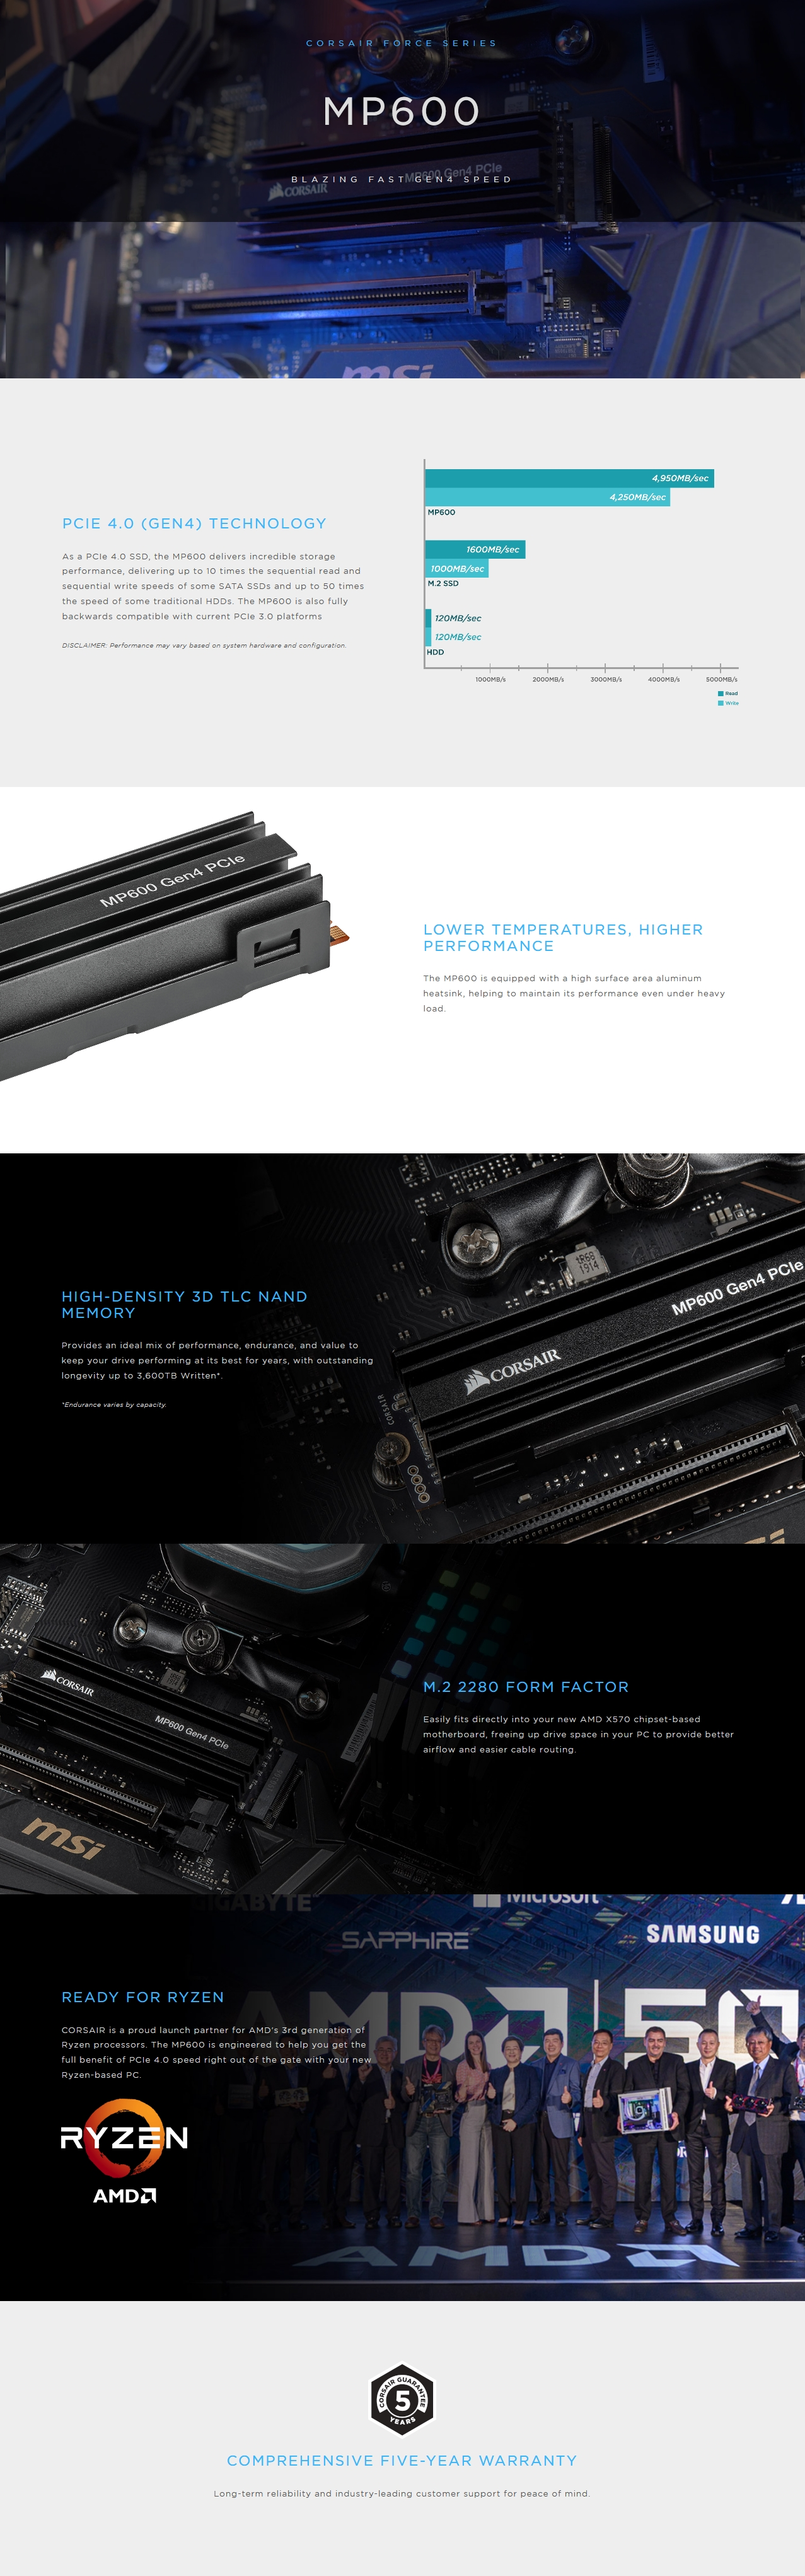 A large marketing image providing additional information about the product Corsair Force MP600 1TB Gen4 PCIe NVMe M.2 SSD  - Additional alt info not provided